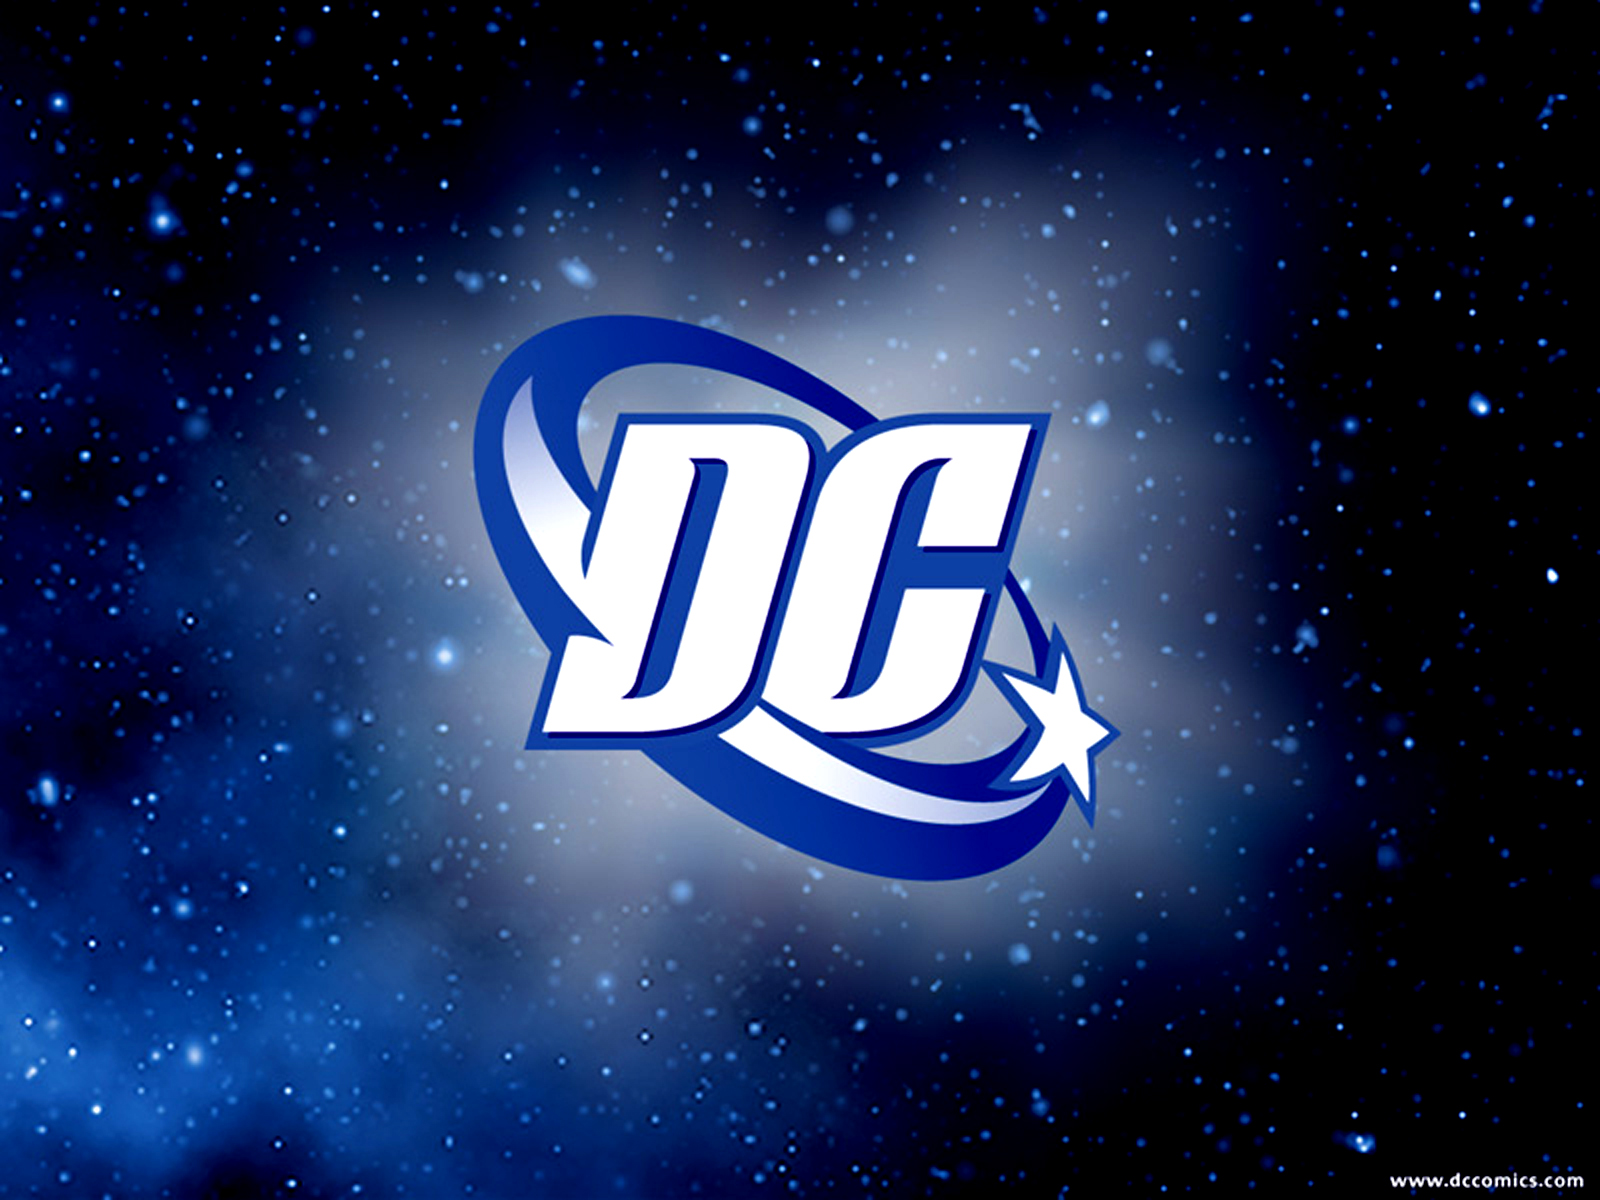 DC_Comics_Super_Heroes_HD_Logo_Wallpaper_www.Vvallpaper.Net_1